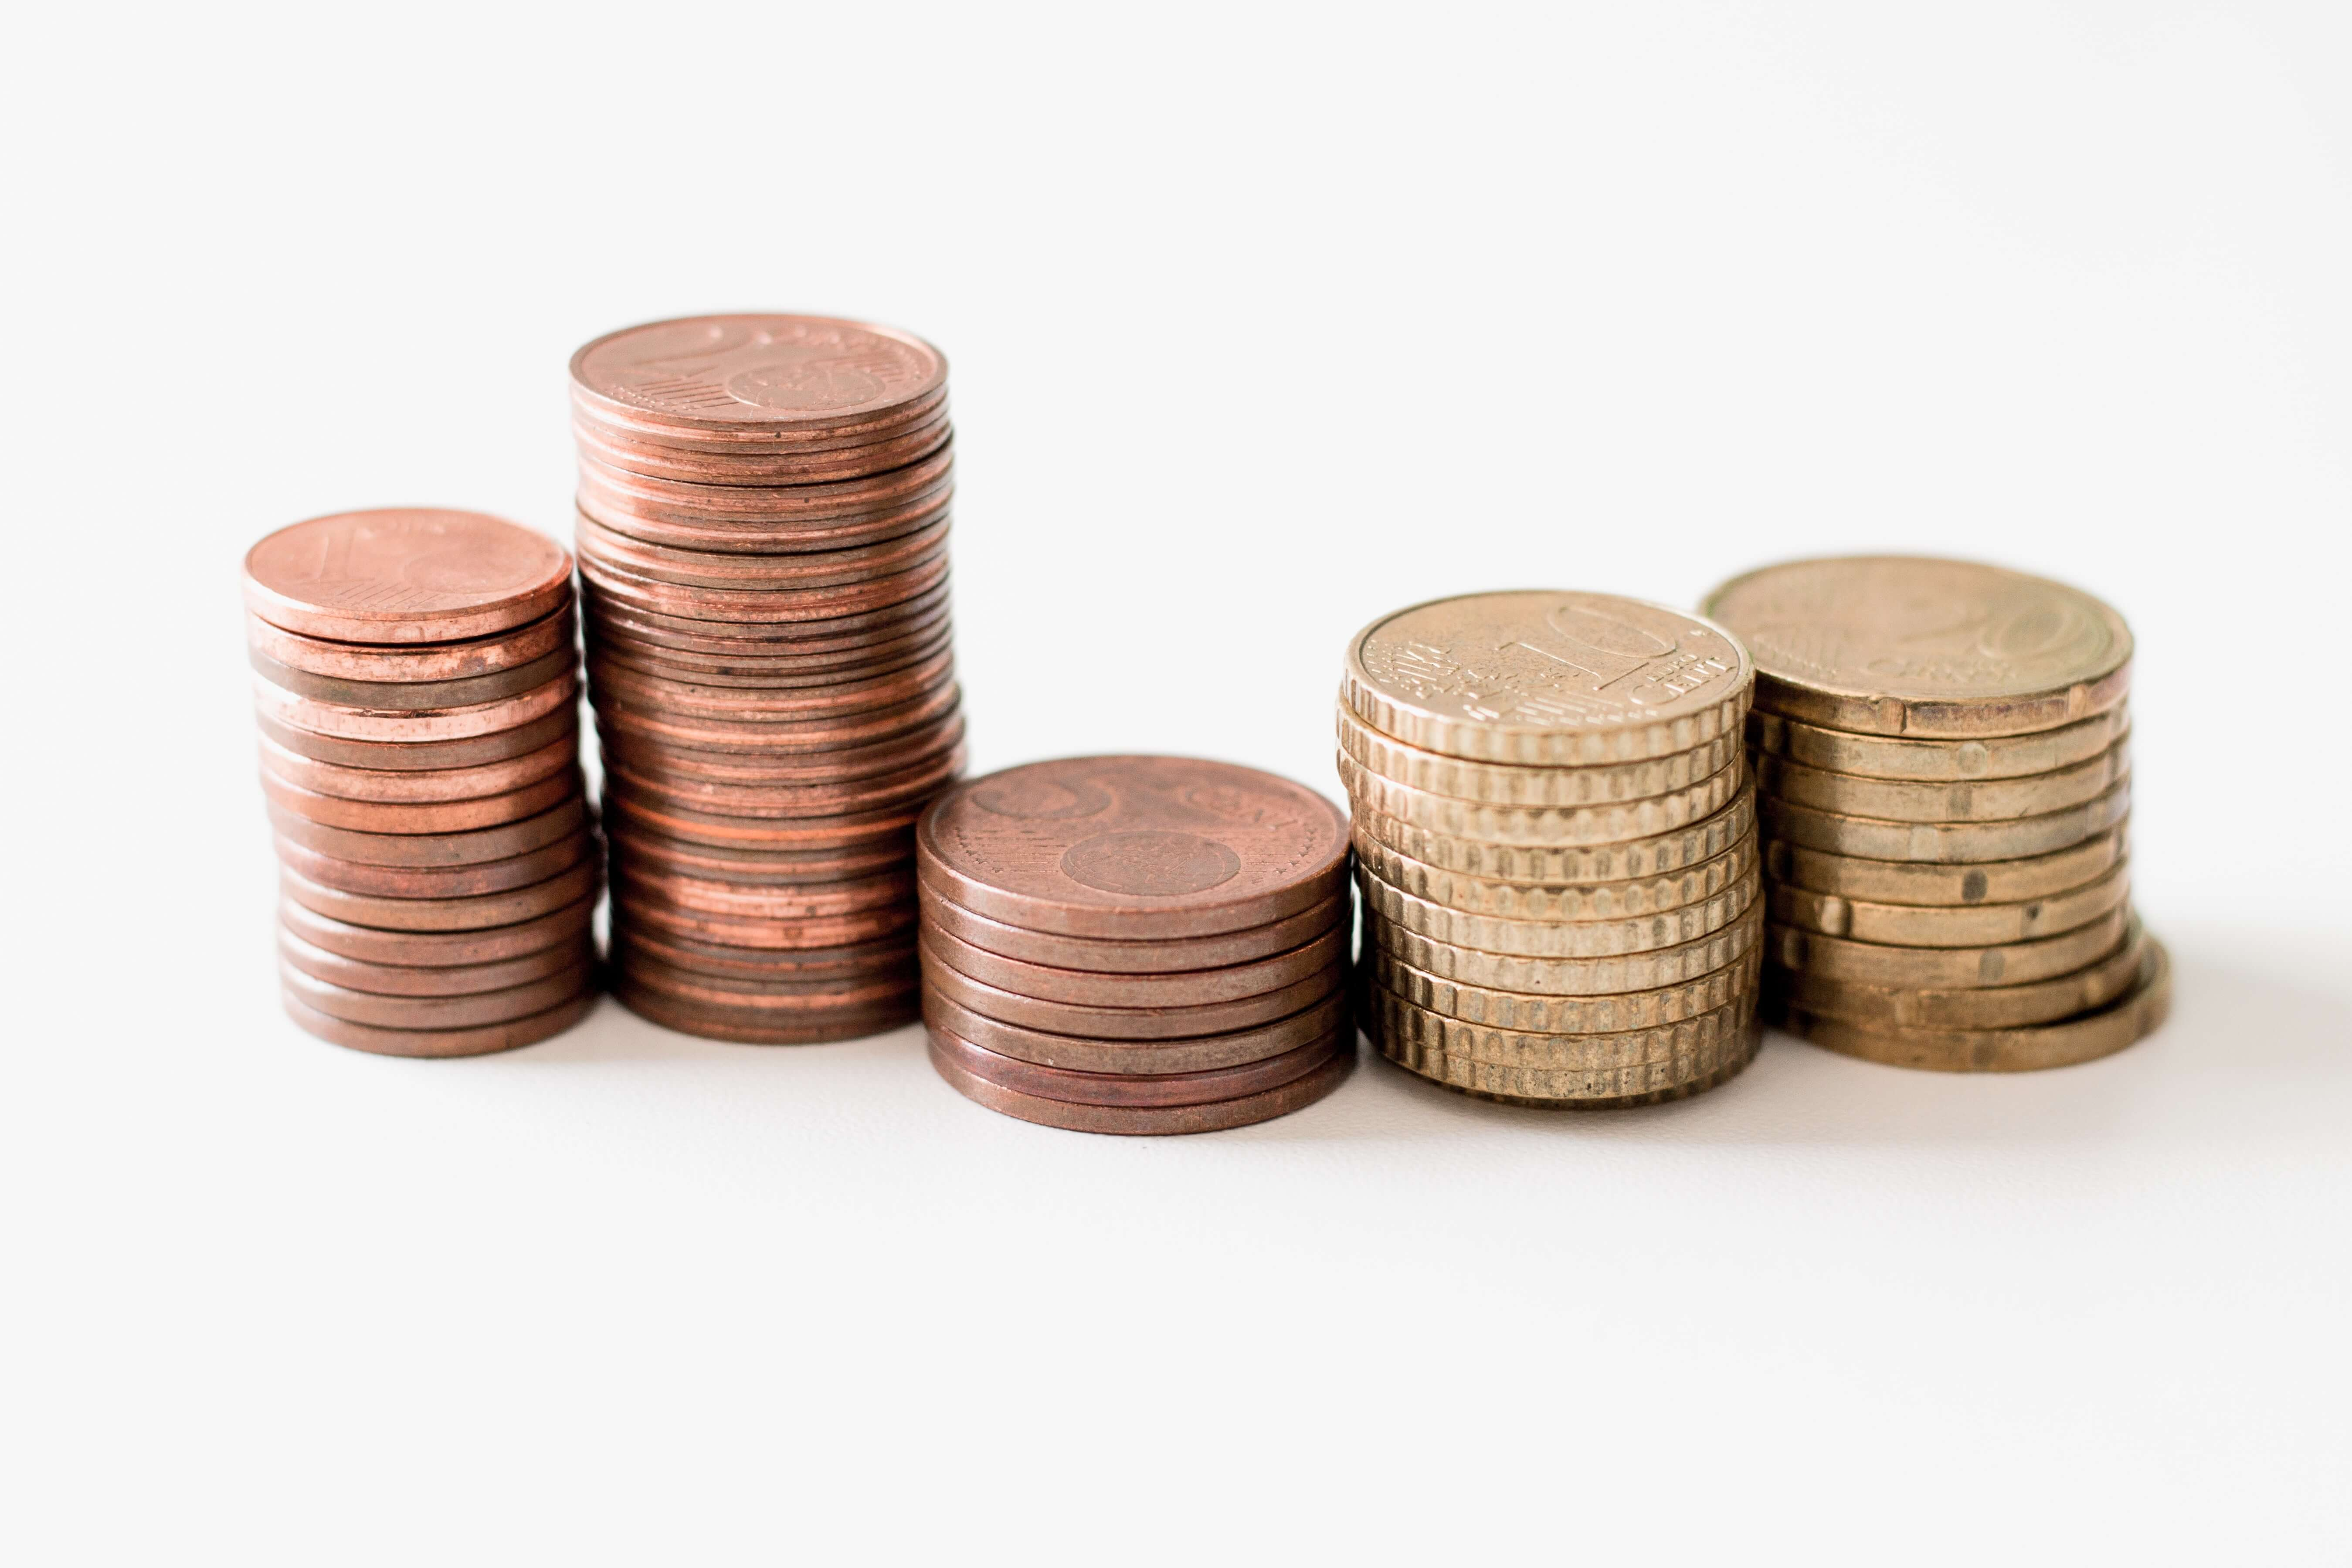 Raising Capital For Your Business Through Crowdfunding